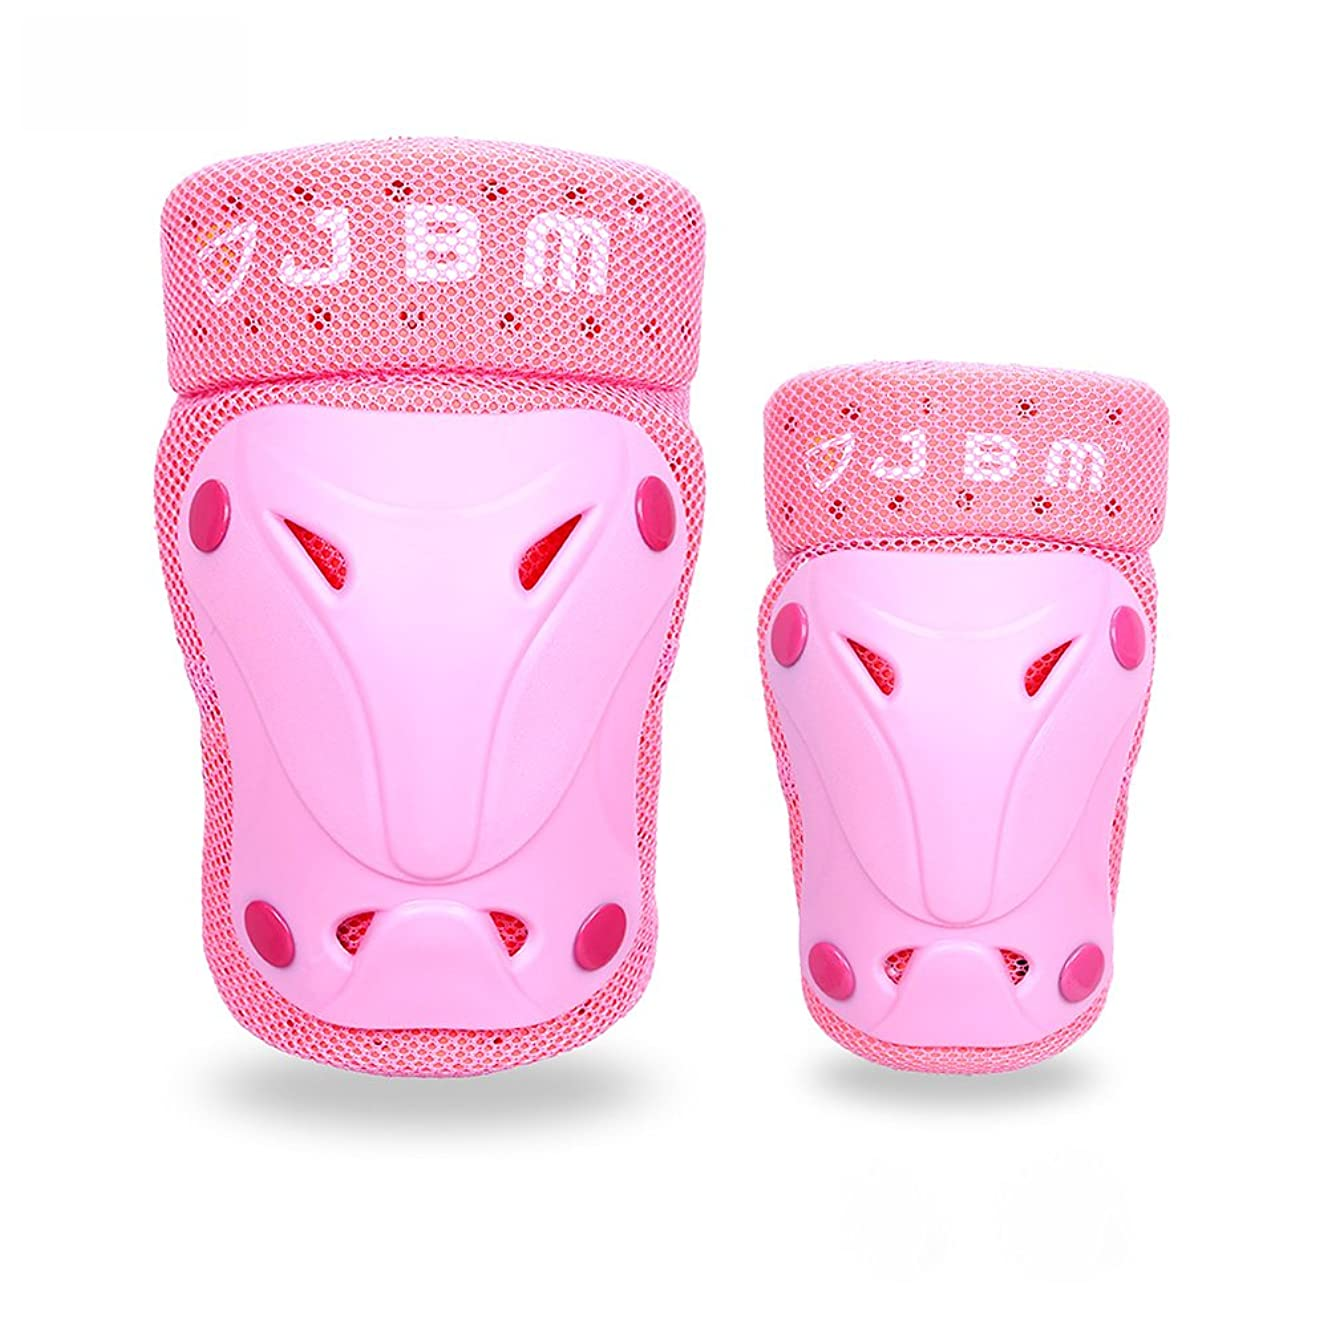 JBM Child Kids Bike Cycling Bicycle Riding Protective Gear Set, Knee and Elbow Pads with Wrist Guards Toddler for Multi-Sports Outdoor Activities: Rollerblading, Skating, Football, Volleyball, BMX